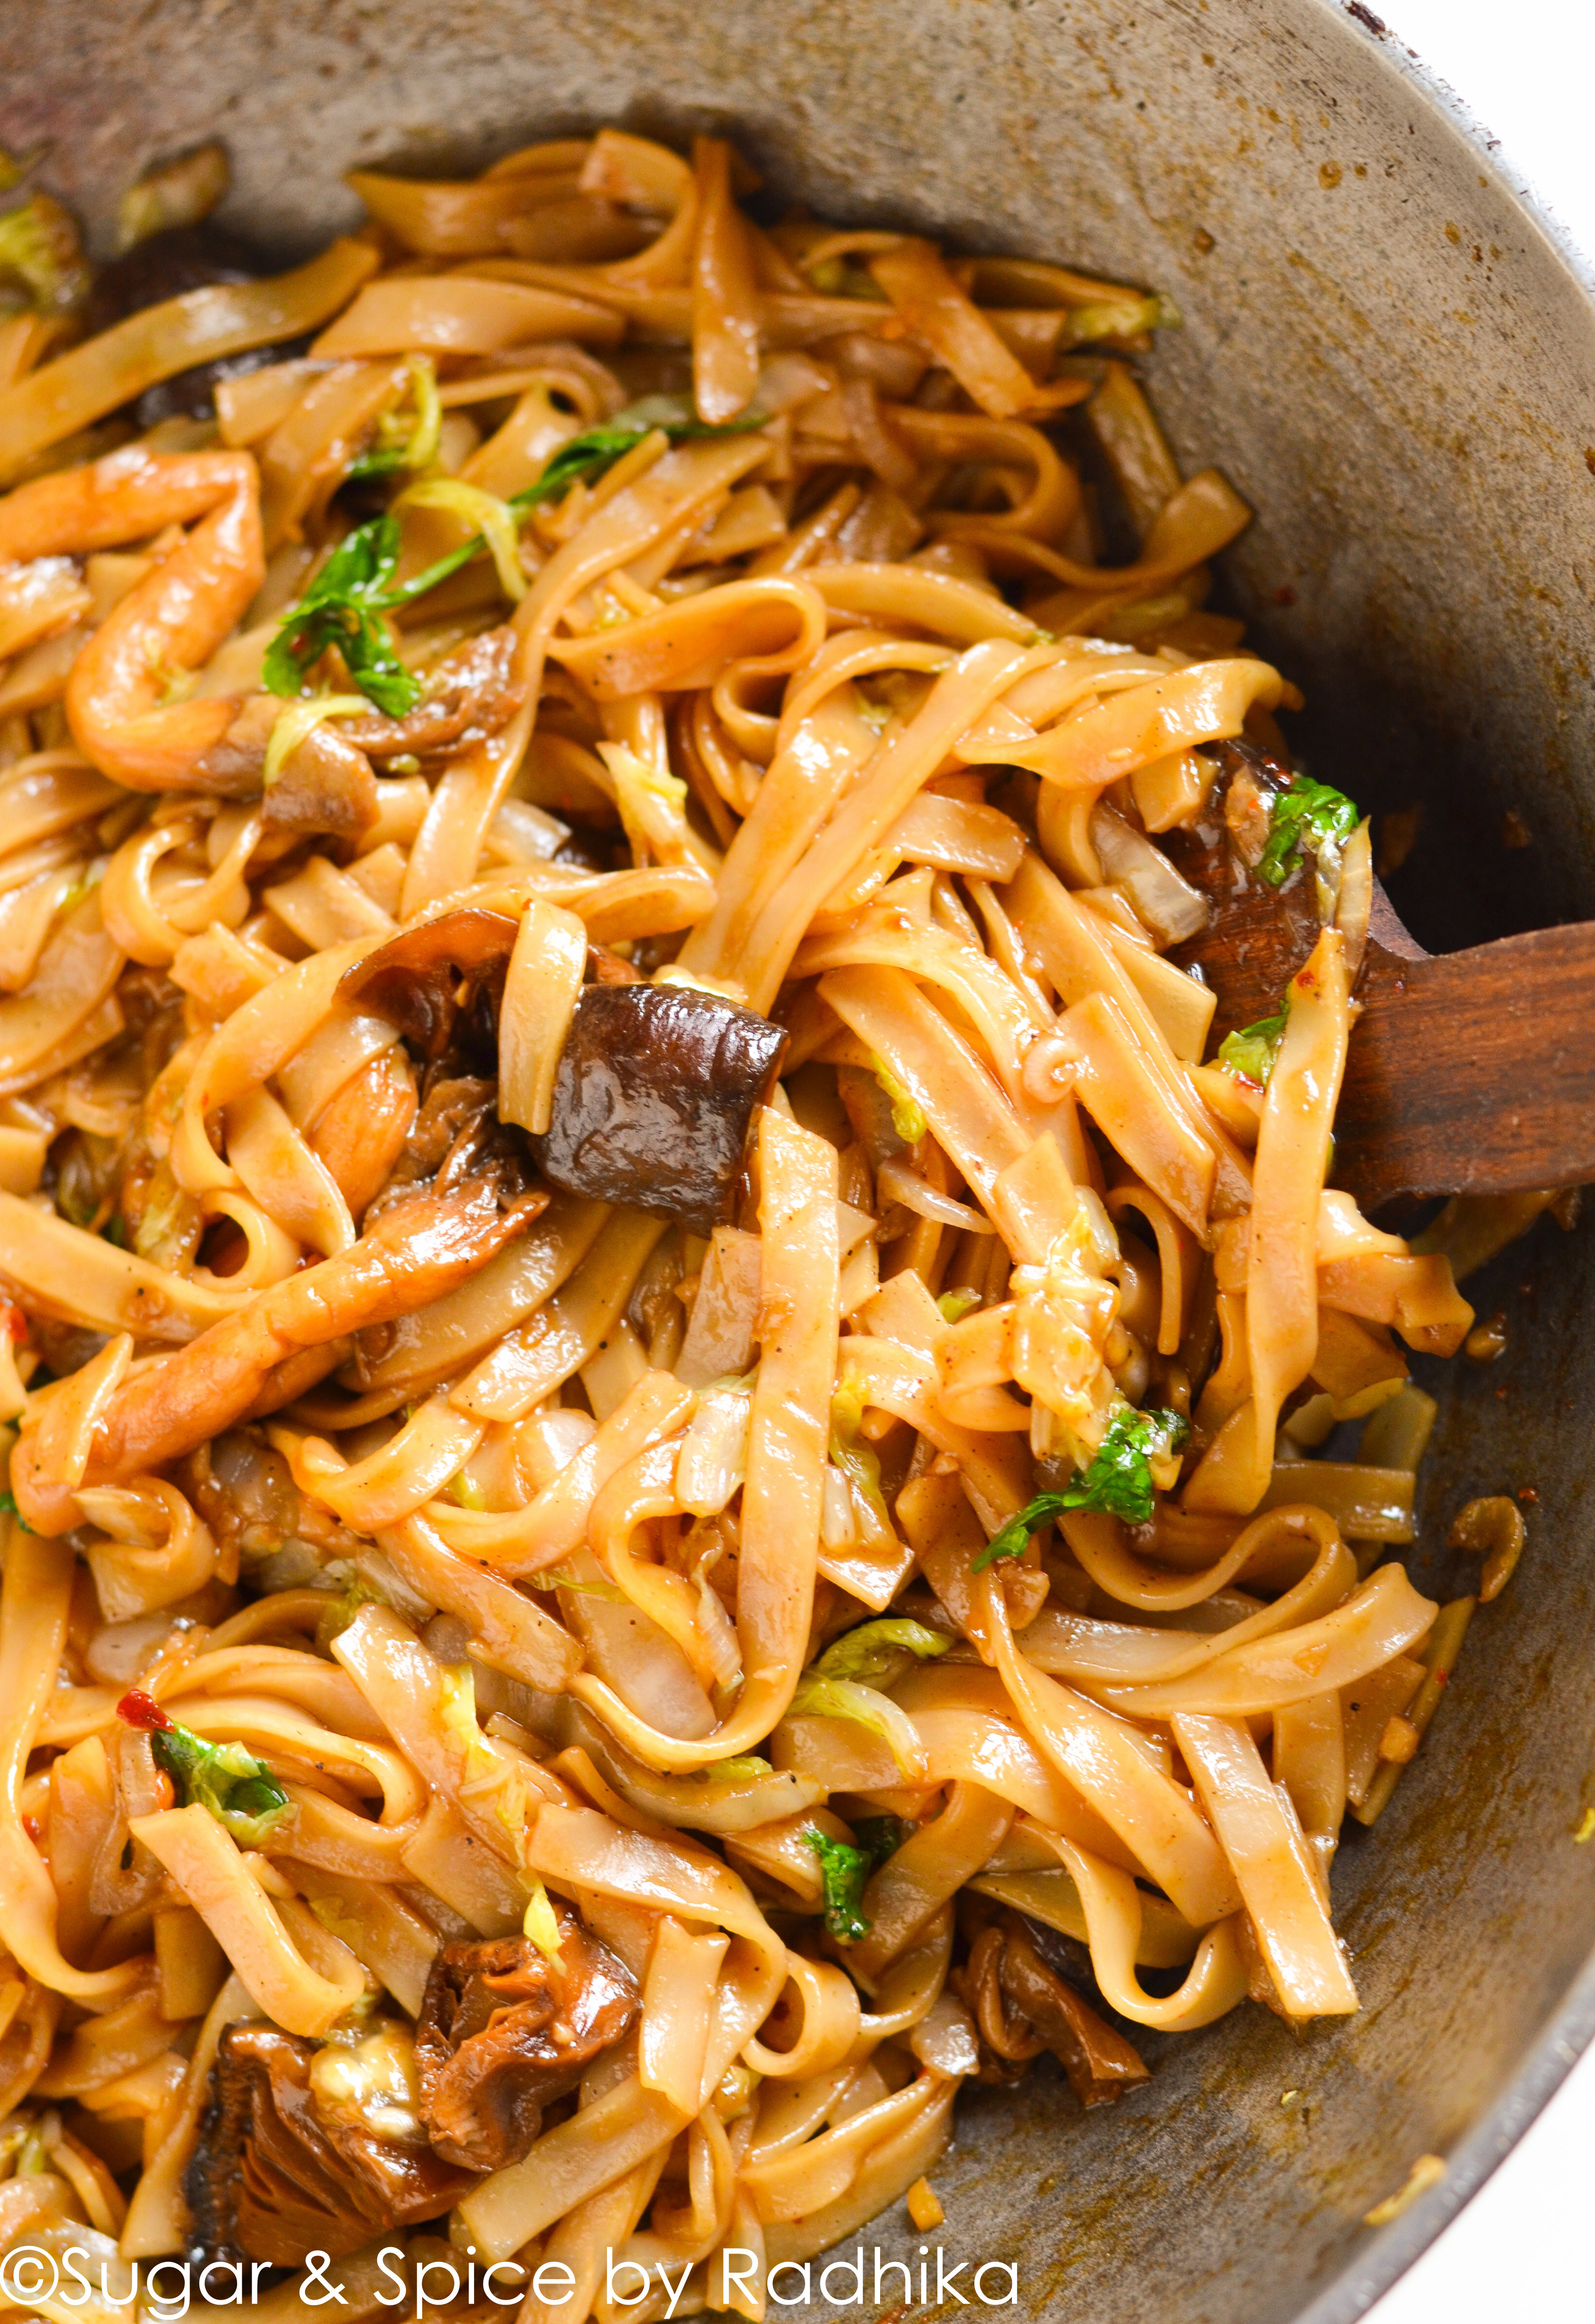 How To Cook Rice Noodles  Rice Stick Noodles with Shiitake and Oyster Mushrooms